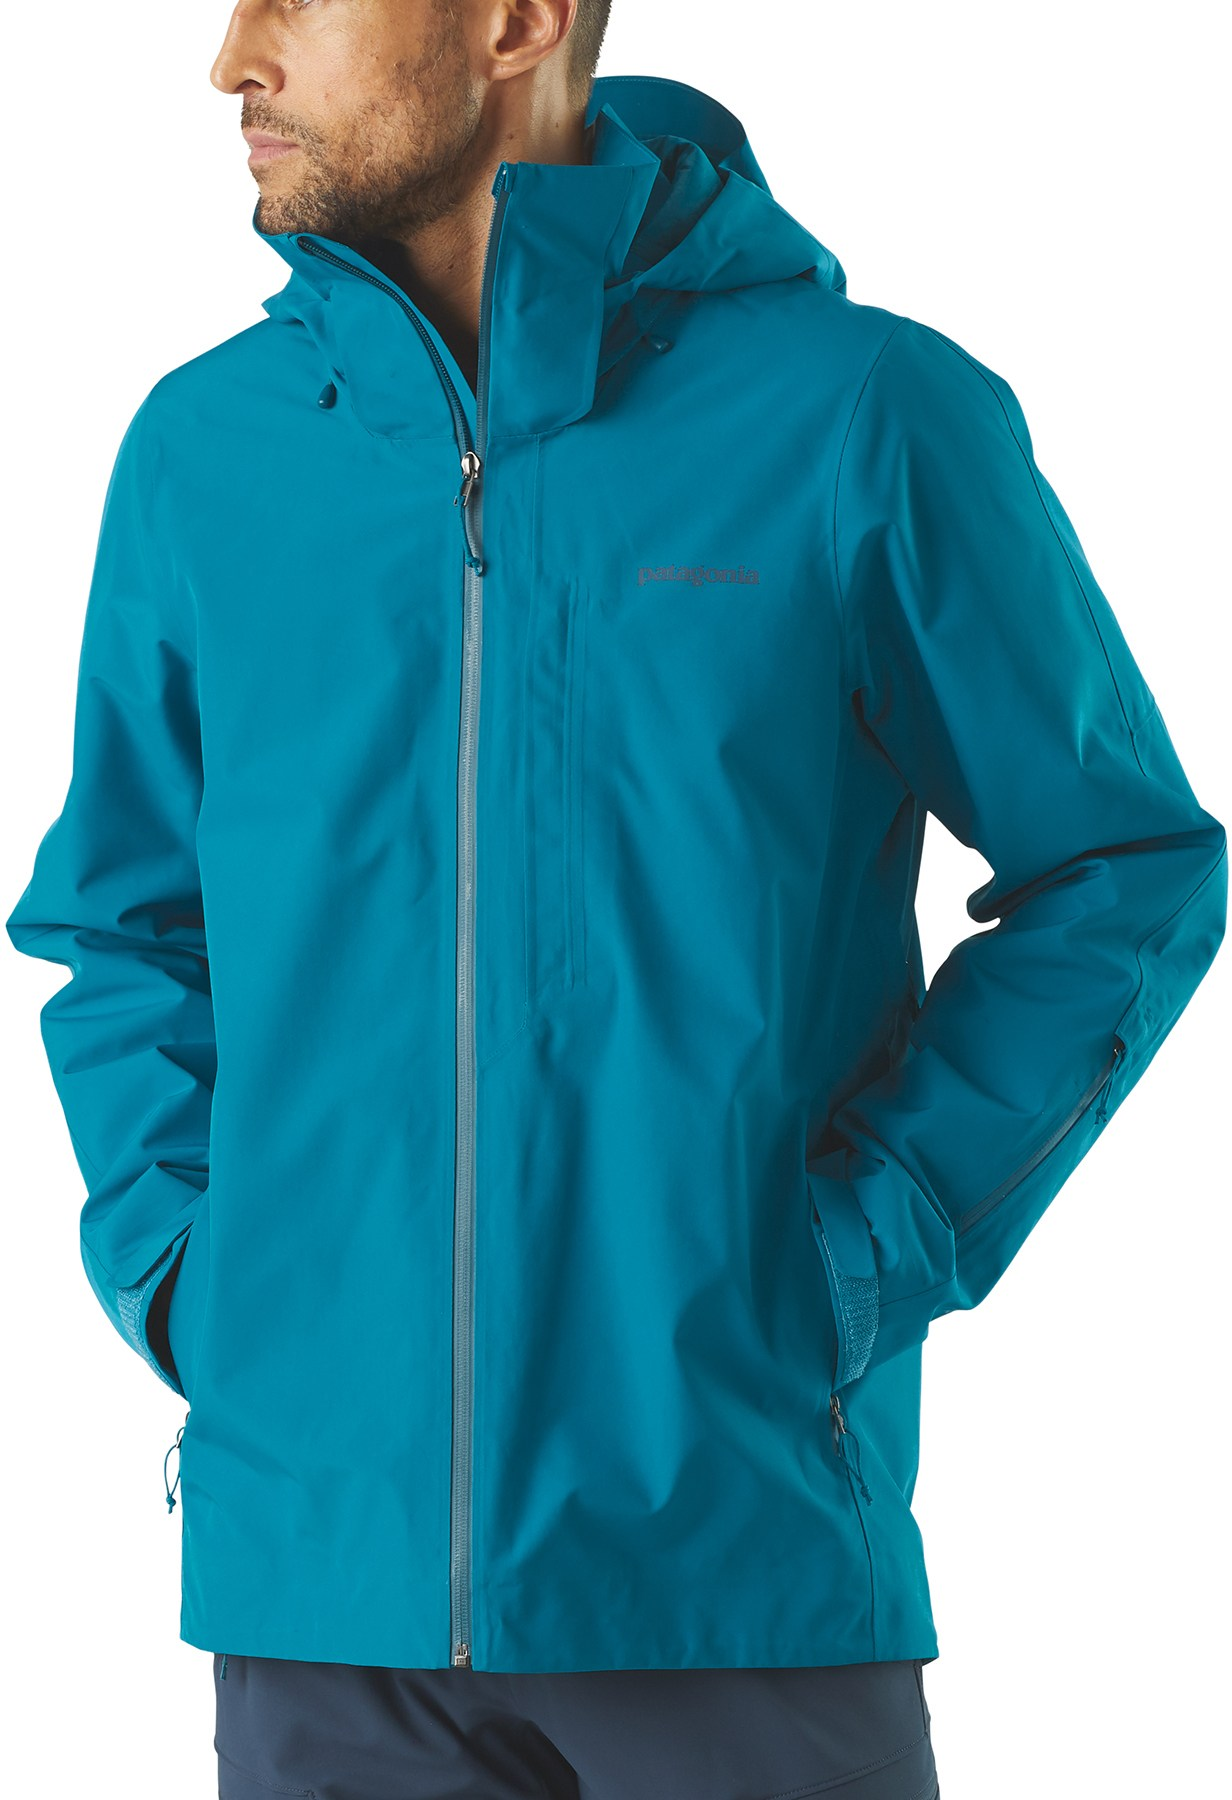 Patagonia Powder Bowl Insulated Jacket - Men's